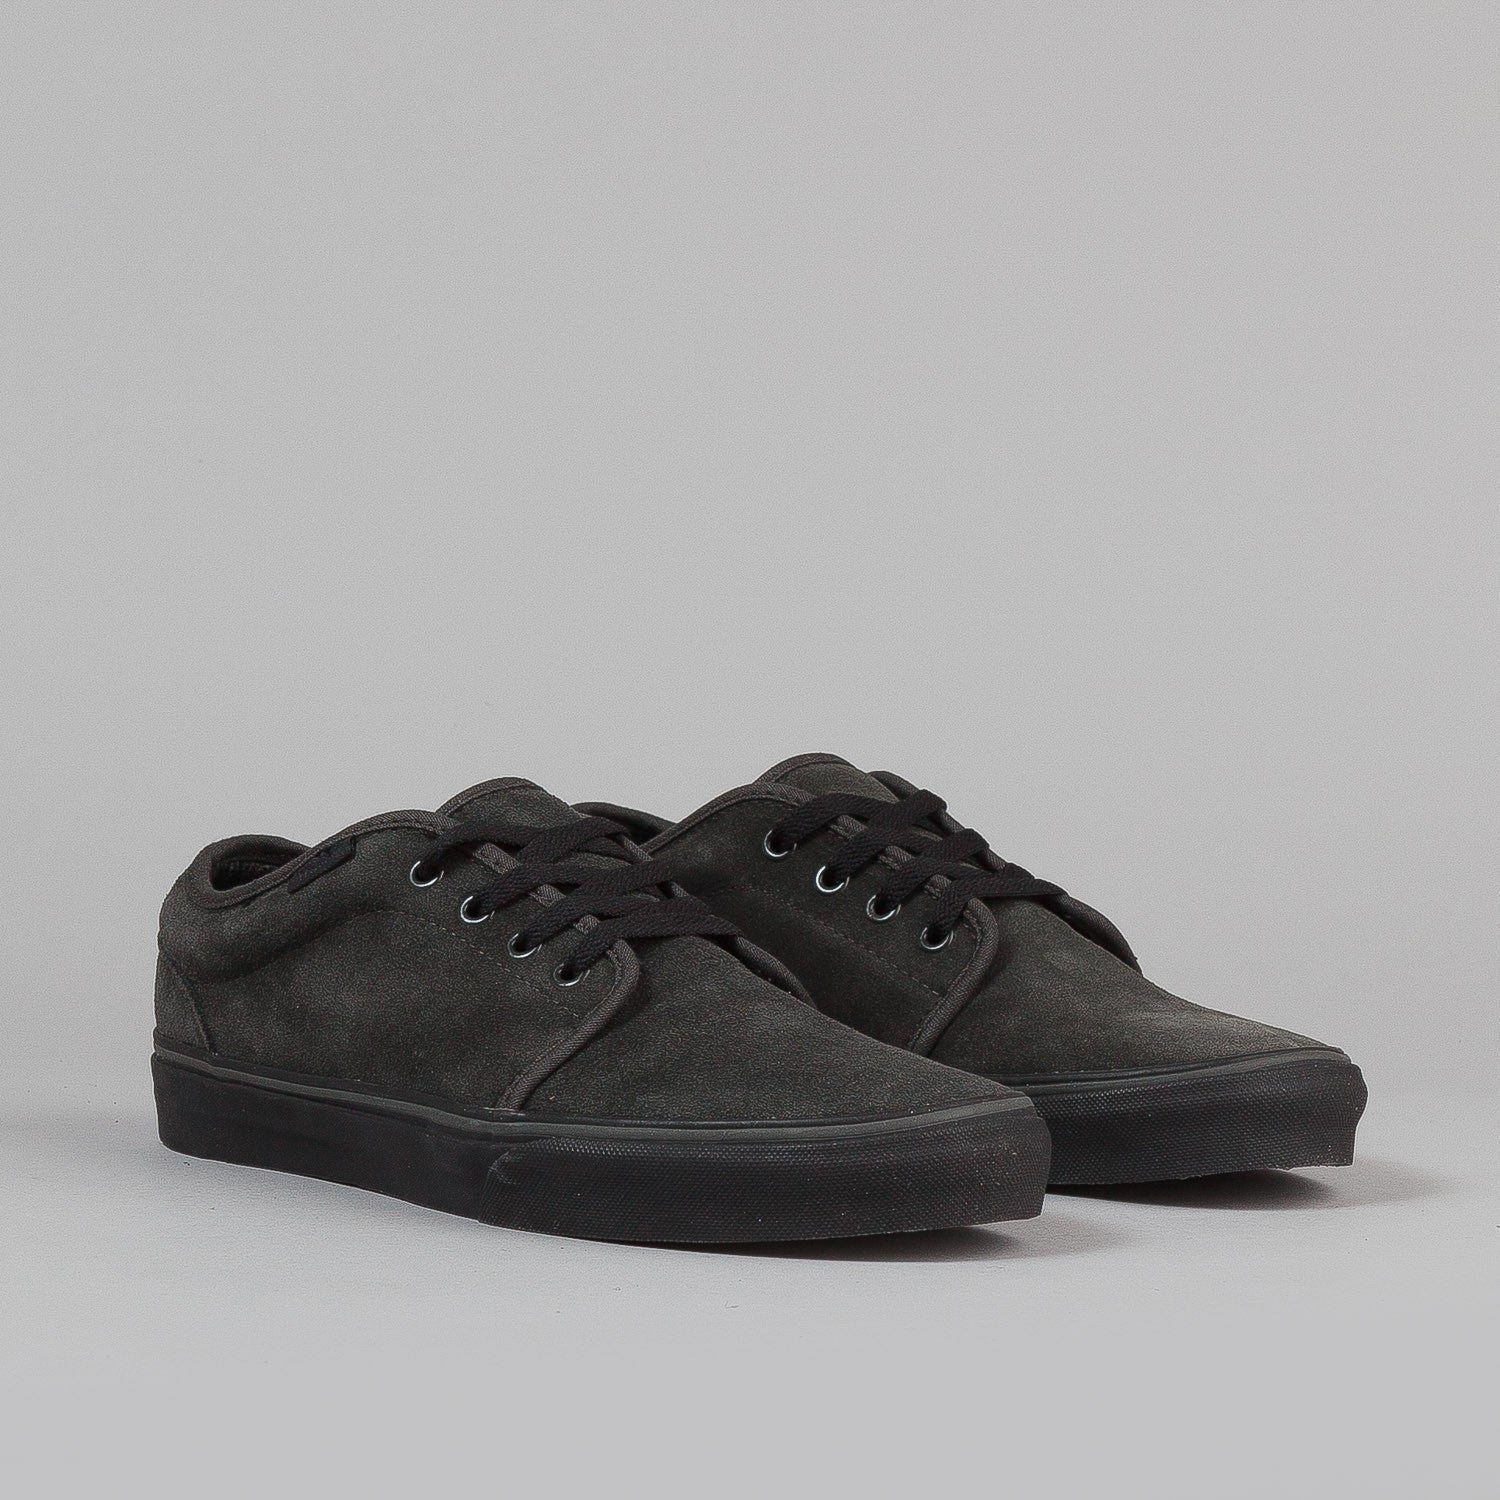 Vans 106 Vulc Shoes - (Suede) Peat / Black